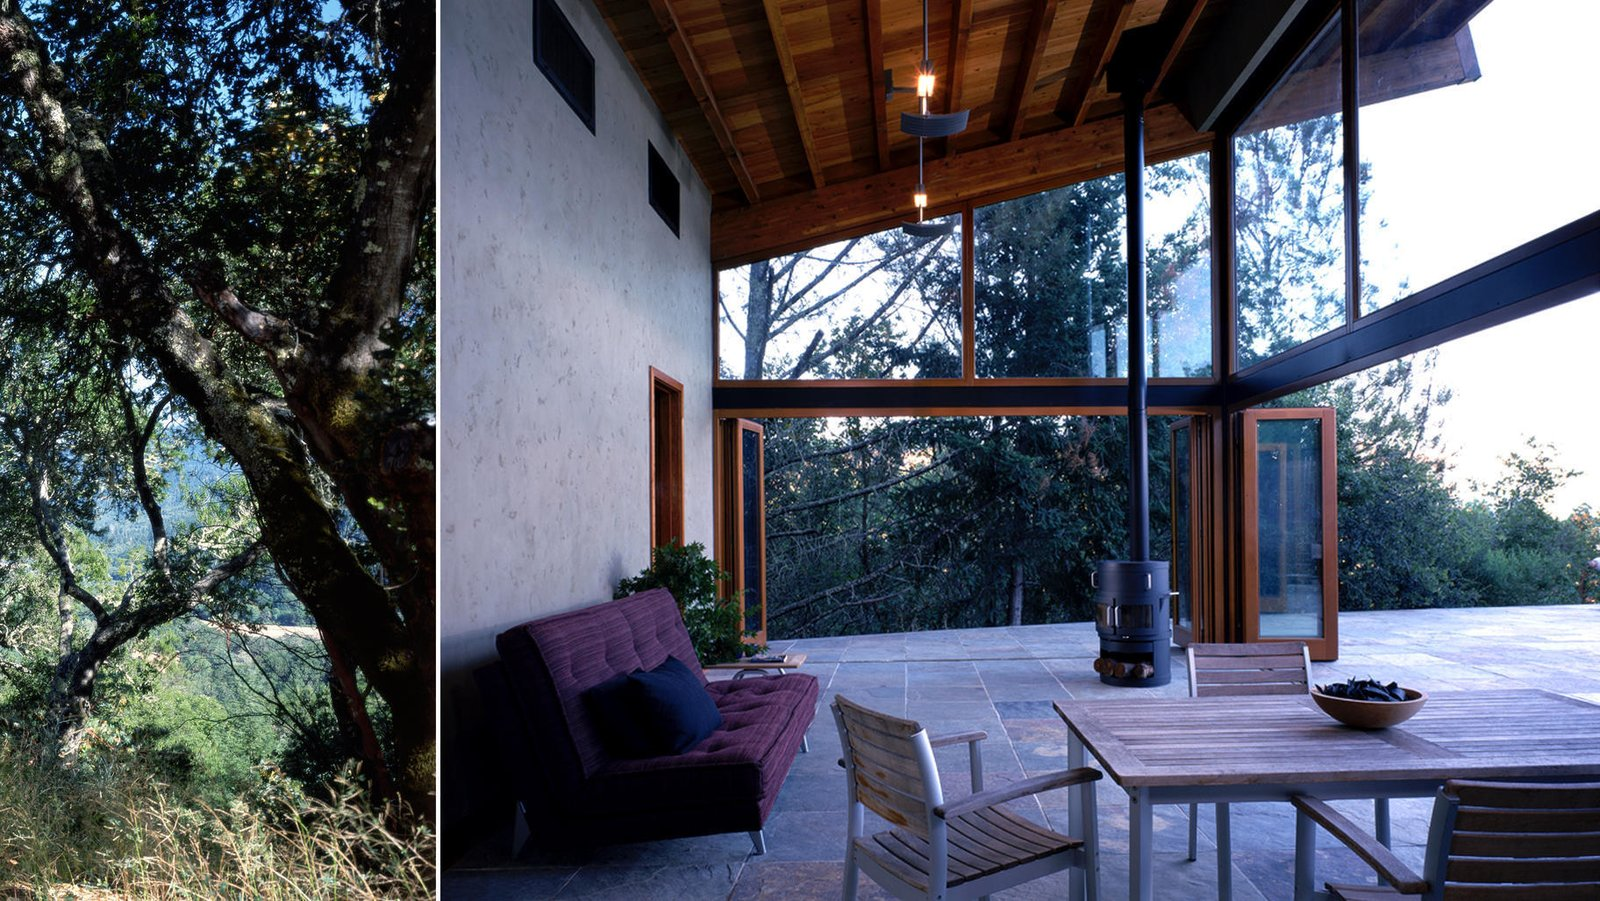 #poolhouse #calistoga #exterior #smallspaces #cantileveredroof #cantilevered #roof  Barnes Pool House by Lundberg Design